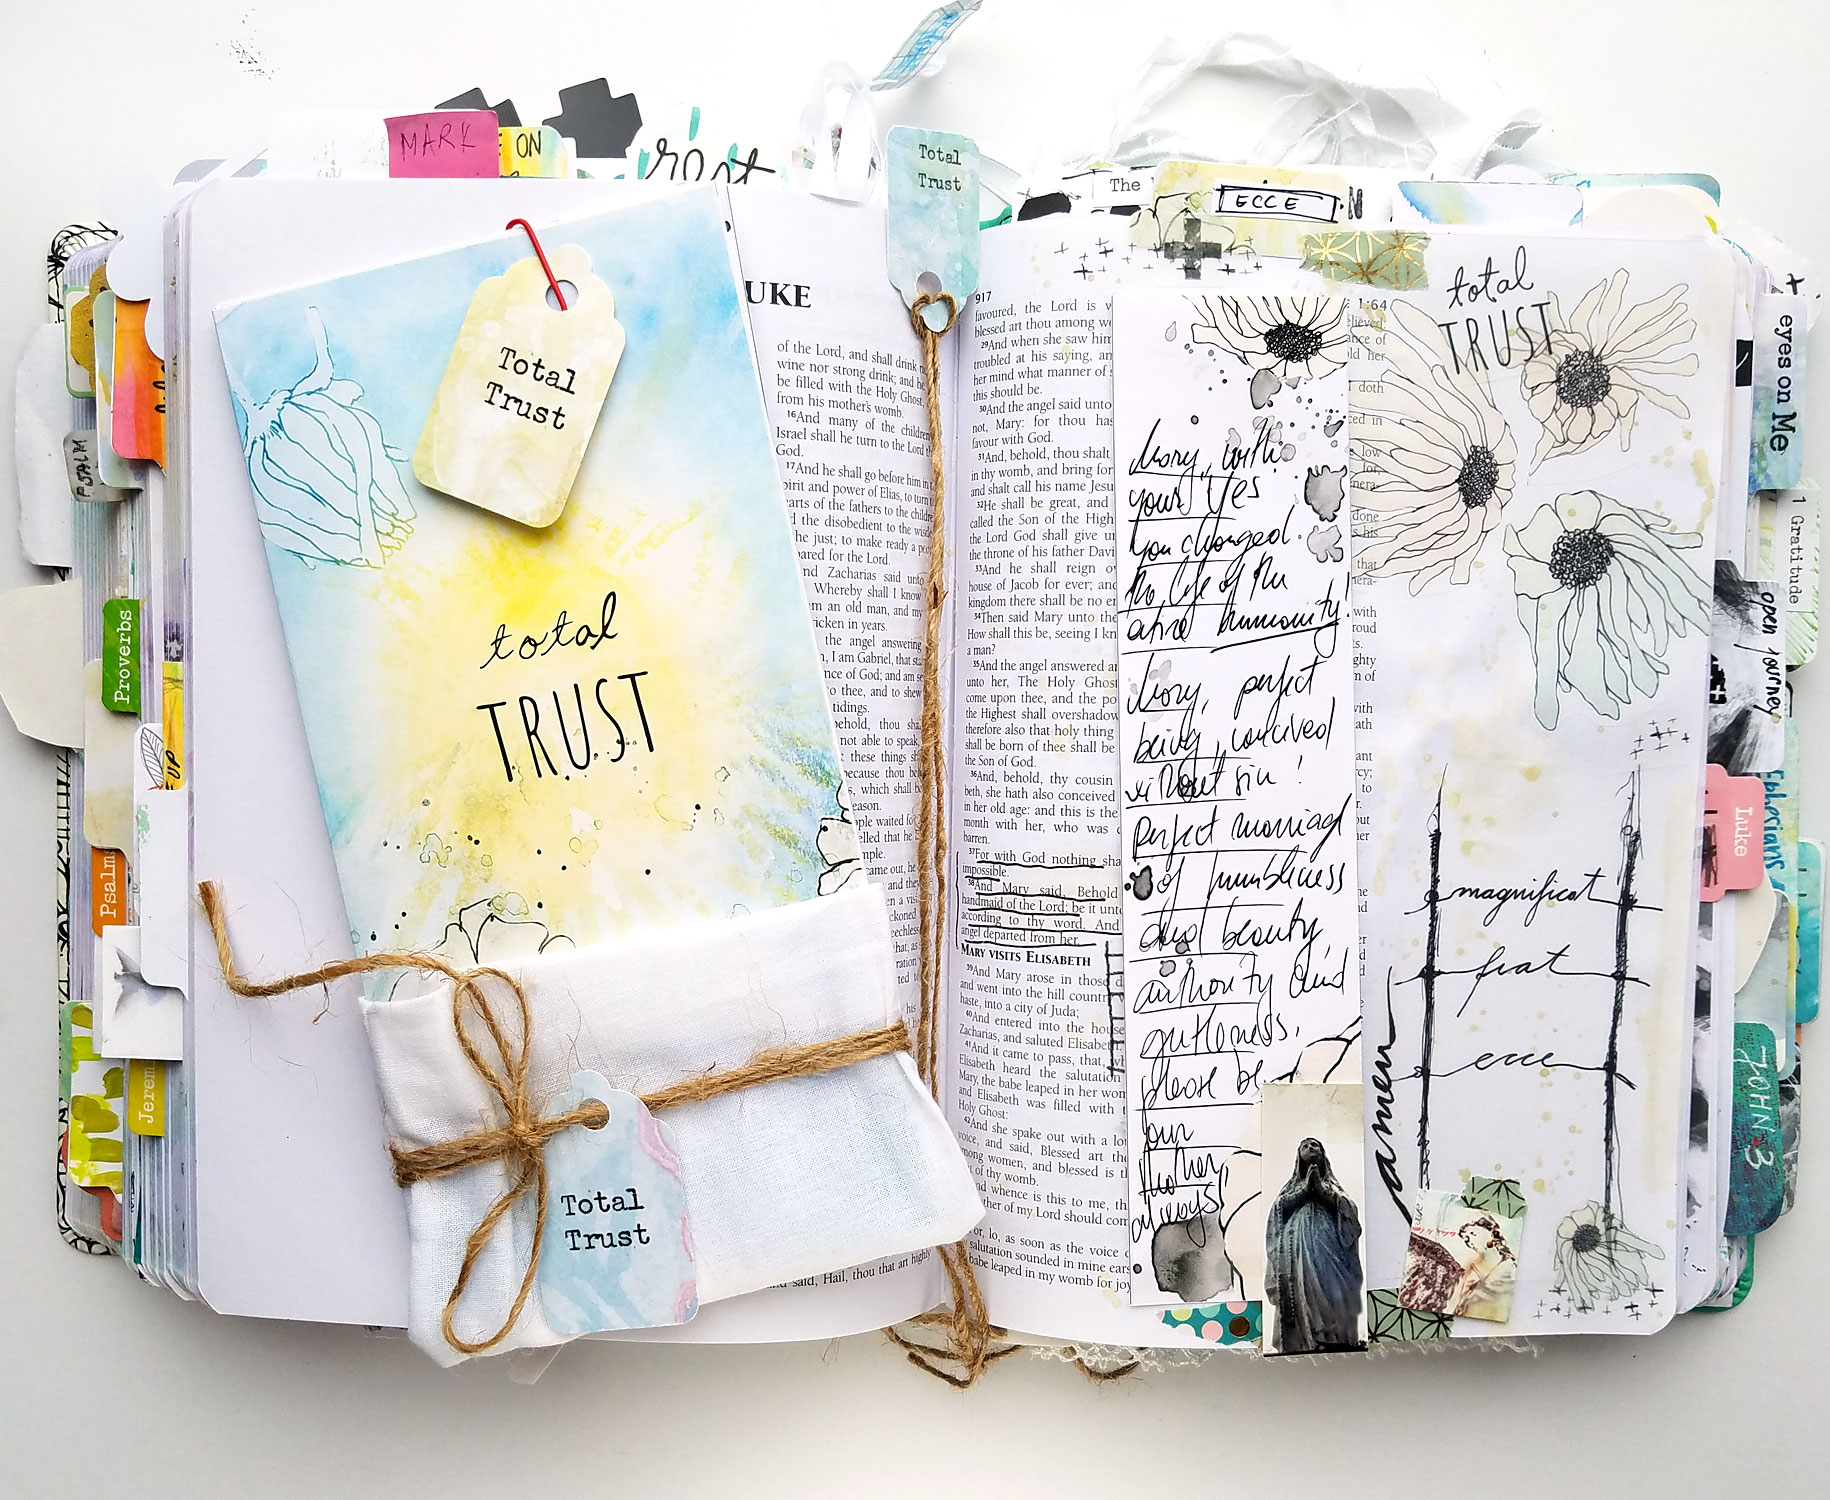 Bible Journaling Entry using the Total Trust devotional kit